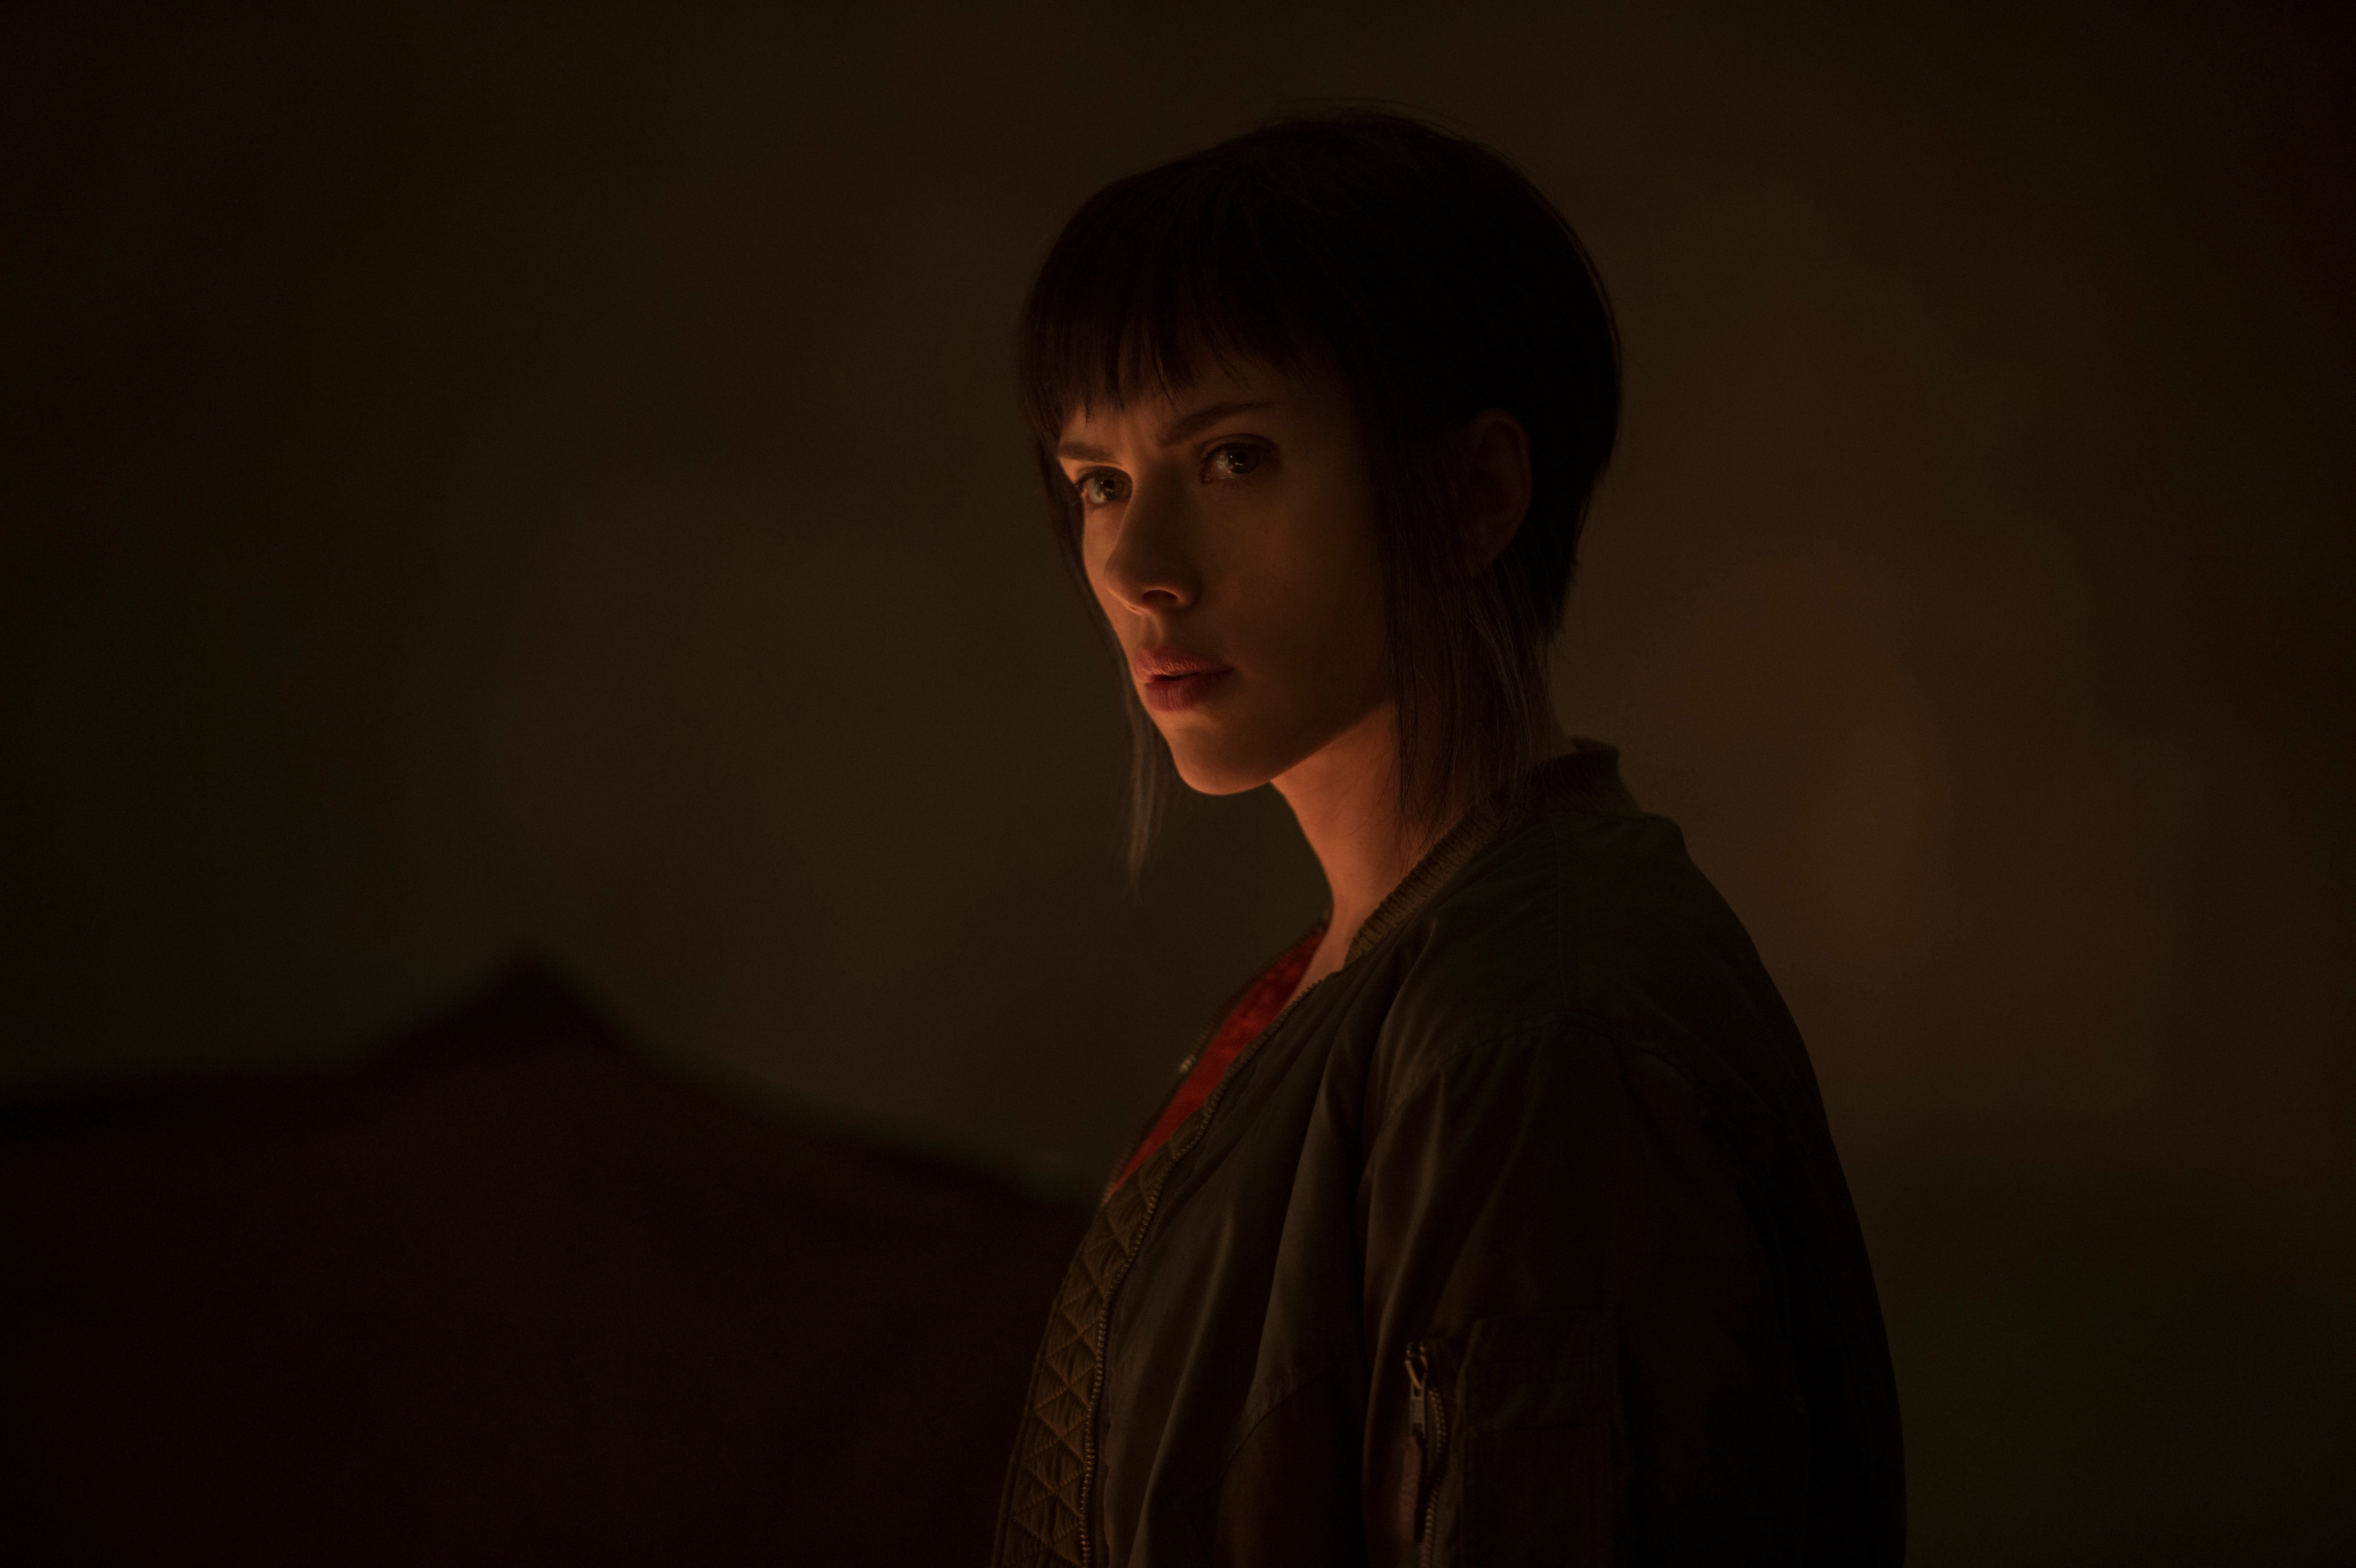 Scarlett Johansson In Ghost In The Shell Movie, HD Movies